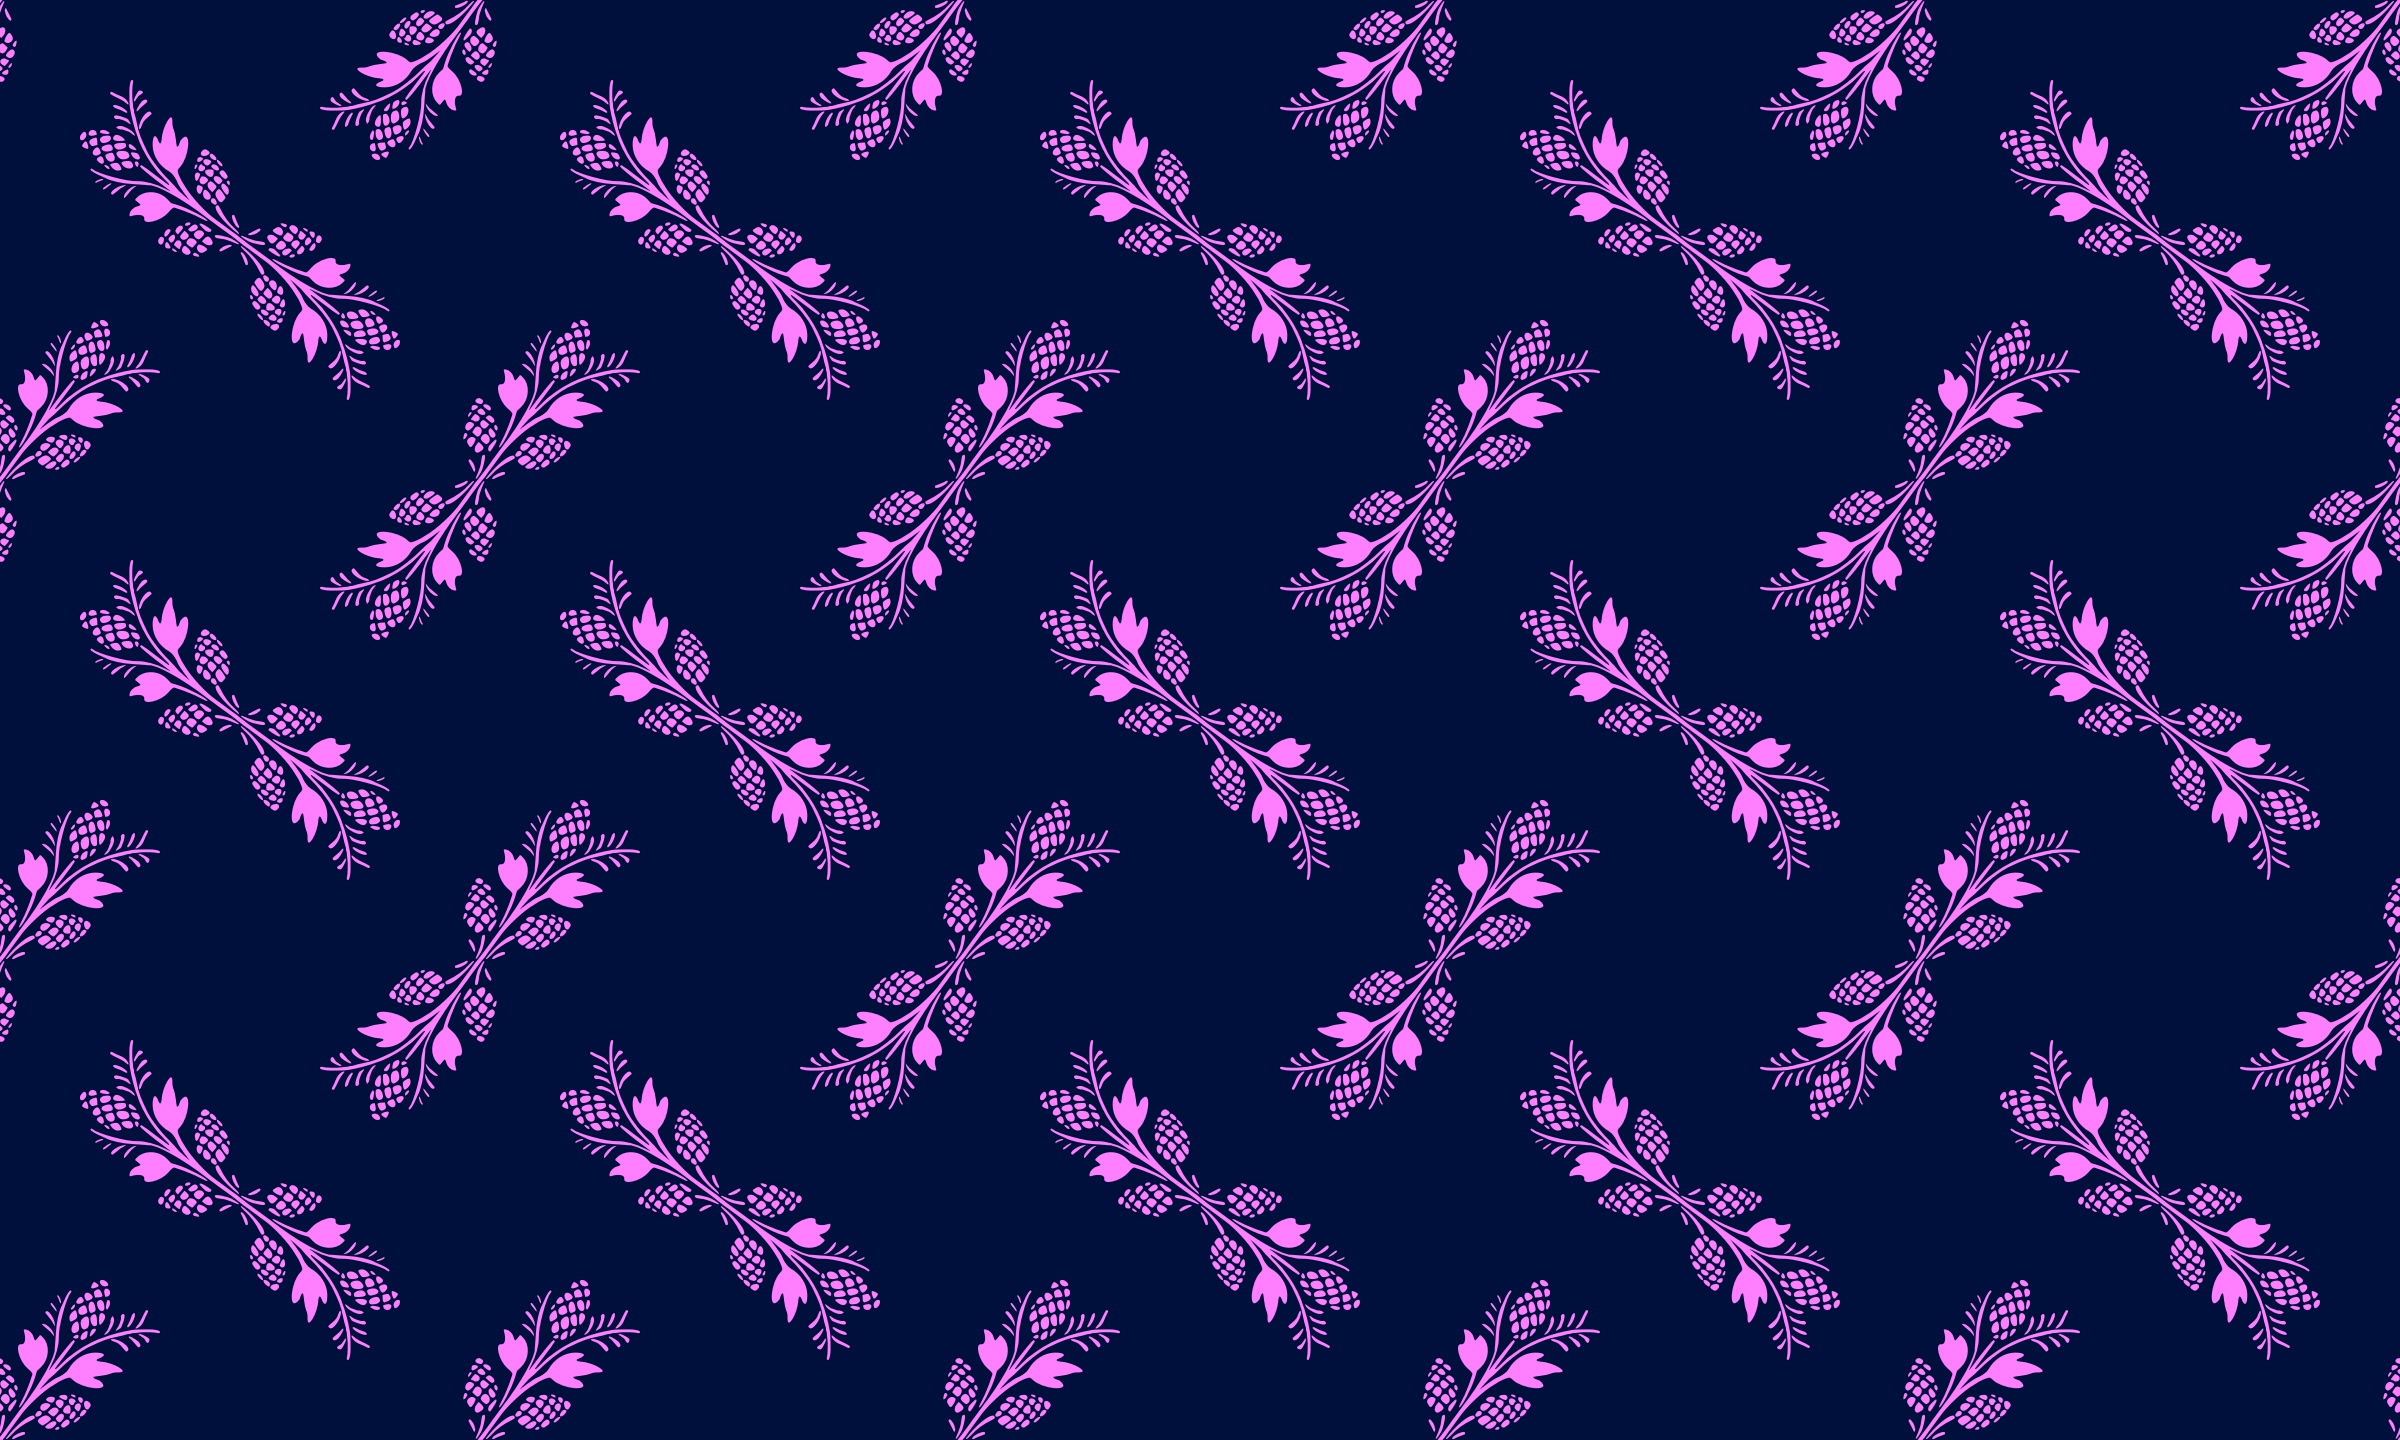 Floral background 10 (colour 2) by Firkin